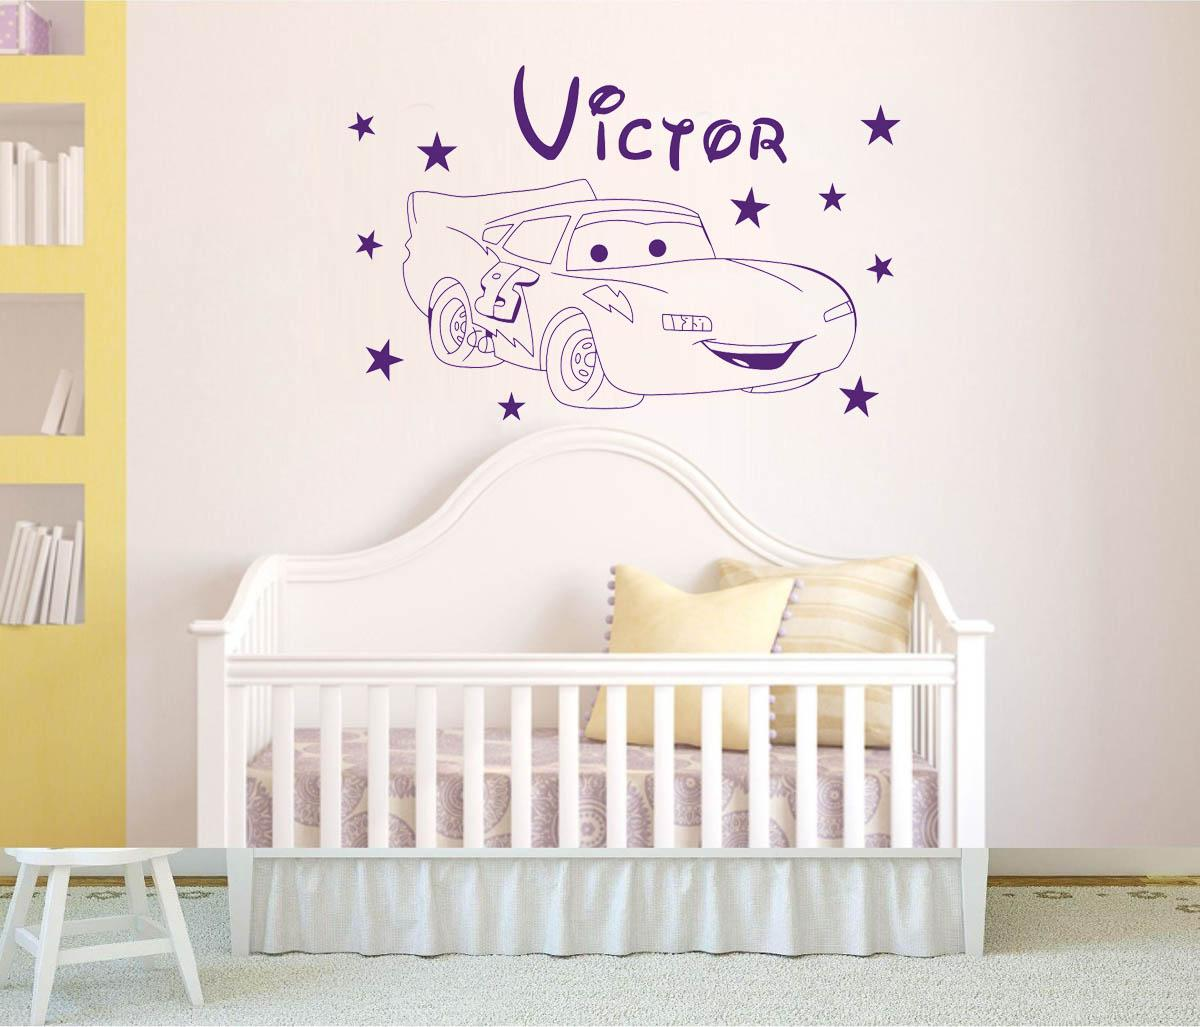 Customer made wall stickers personalized cartoon vinyl art decals customer made wall stickers personalized cartoon vinyl art decals poster for children boys home decor wall sticker murals wall sticker quote from flylife amipublicfo Image collections